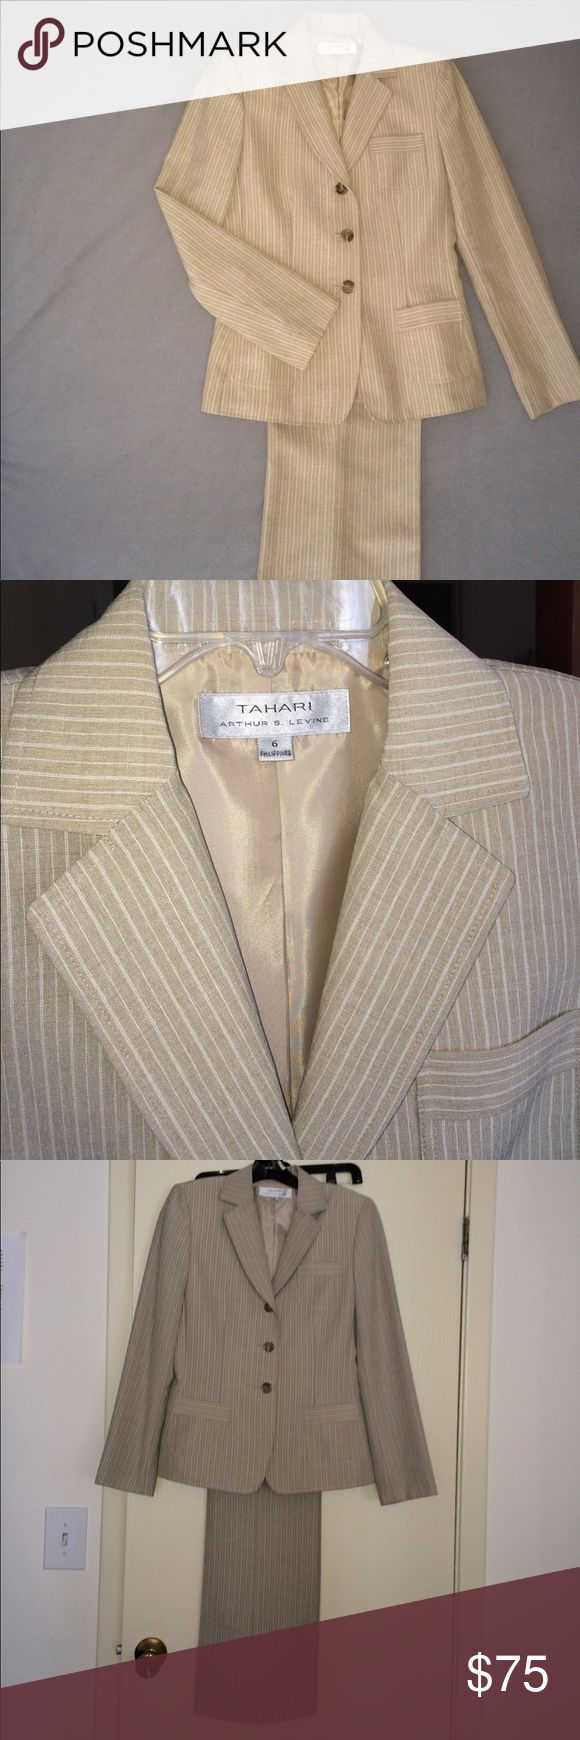 TAHARI 2pc women's pant suit TAHARI  2 pic pant suit , color Tan with pin strips.  3 button single breasted jacket, top pocket and 2 front pockets. Pant front zipper waist has button and snap closure  Size 6  ( New ) never worn . Great suit for the office or any day! TAHARI Other